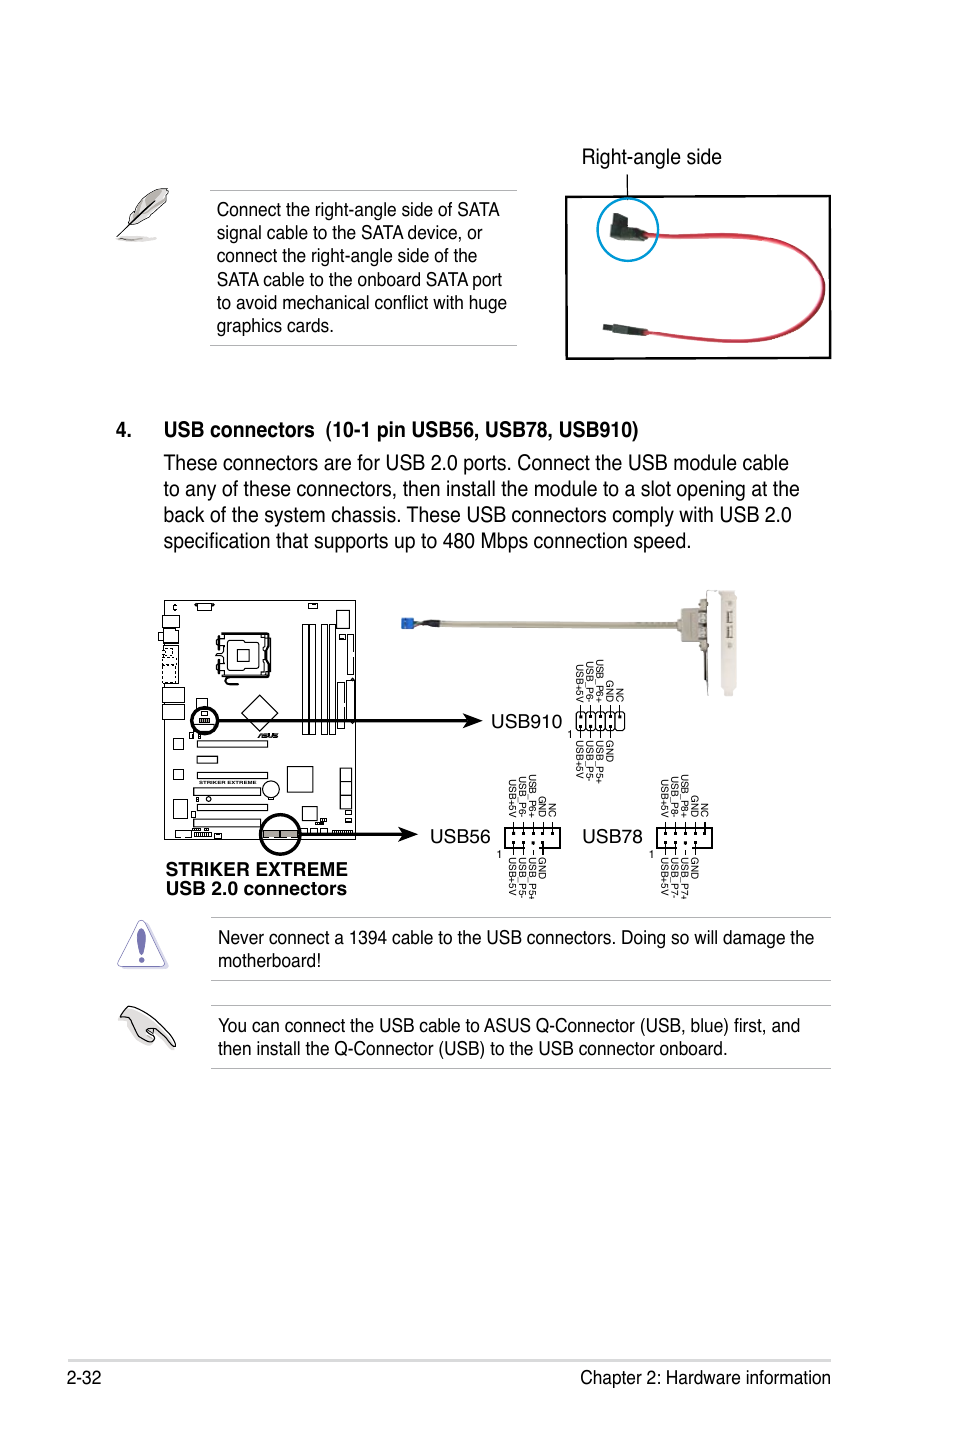 Striker Extreme Usb 20 Connectors Usb56 Usb78 Usb910 Asus To Sata Cable Wiring Schematic User Manual Page 58 172